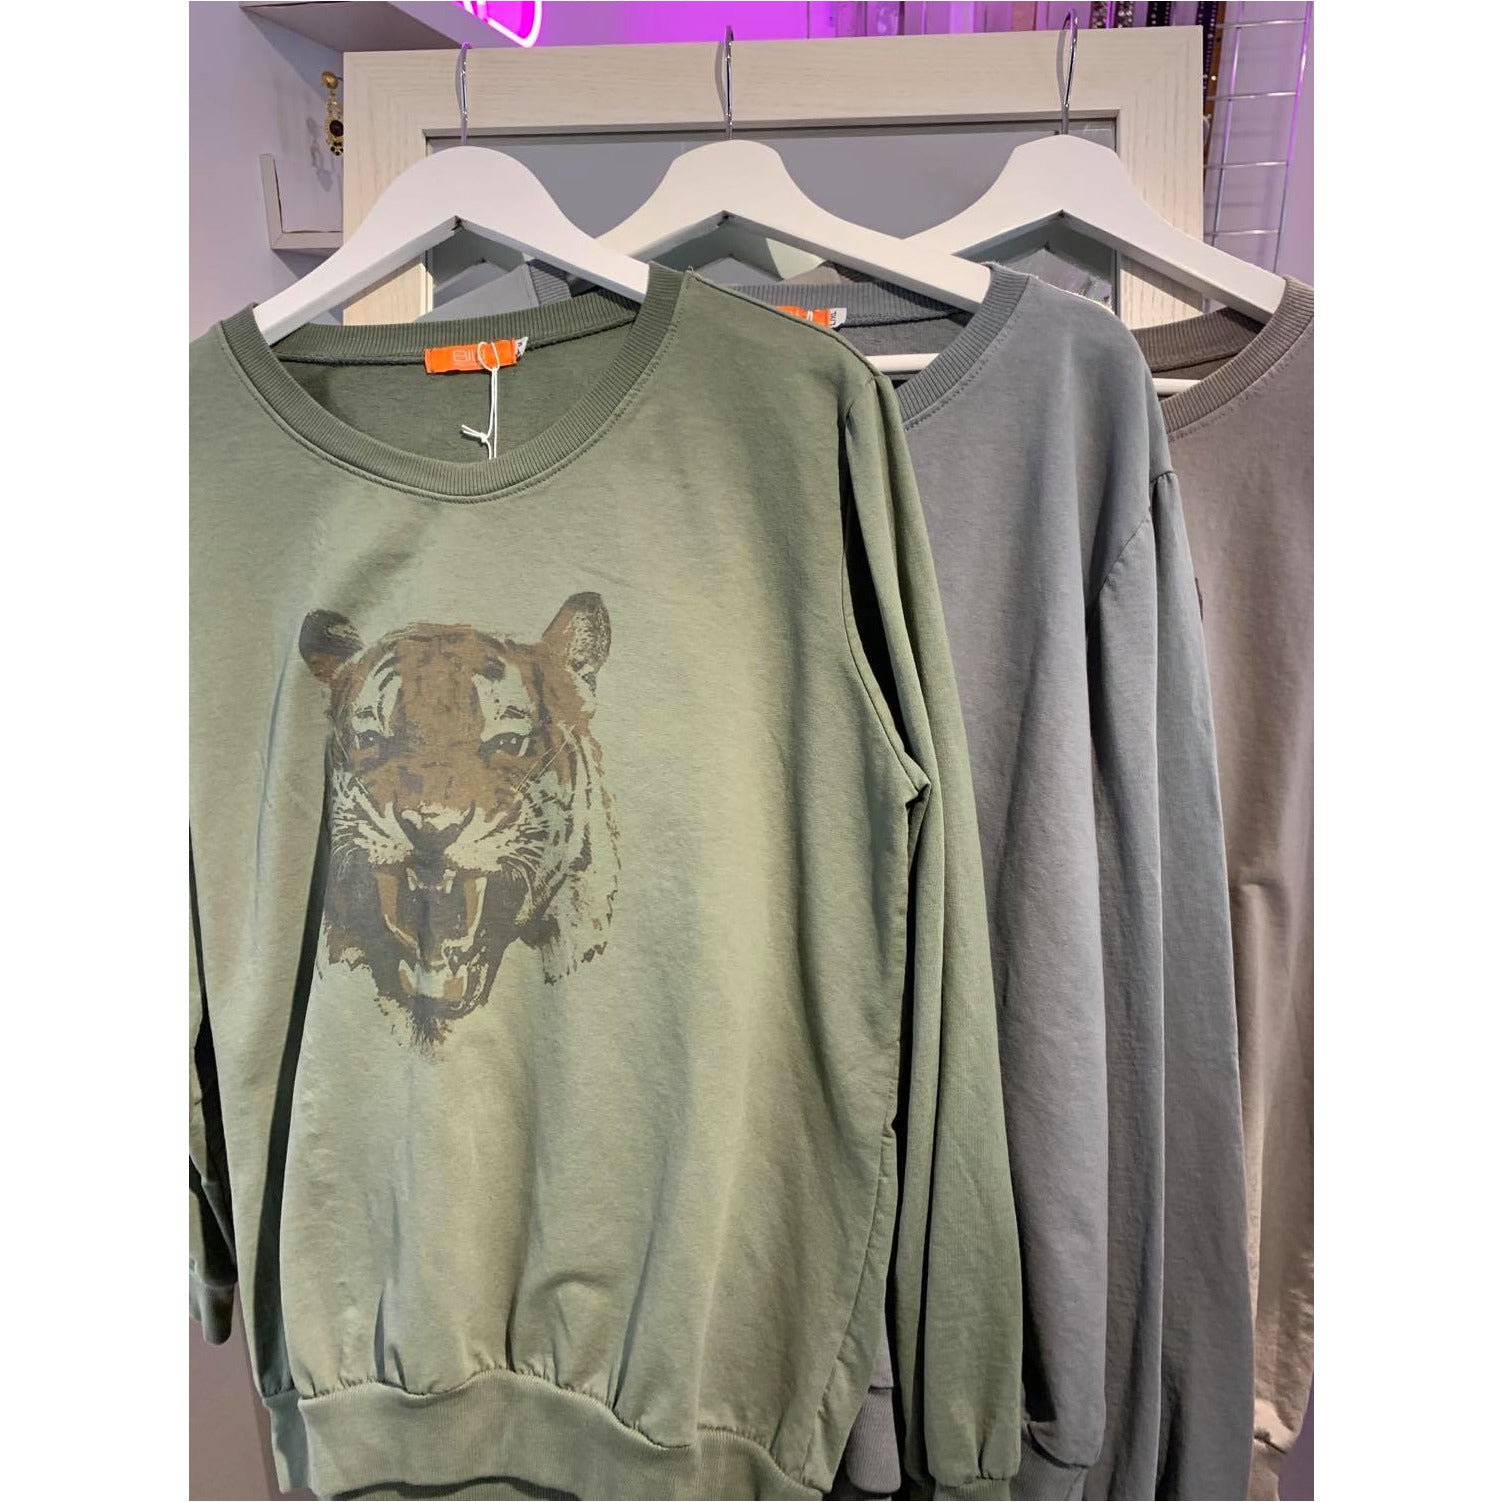 Limited Edition Sweatshirt with Tiger Design - 3 colours available